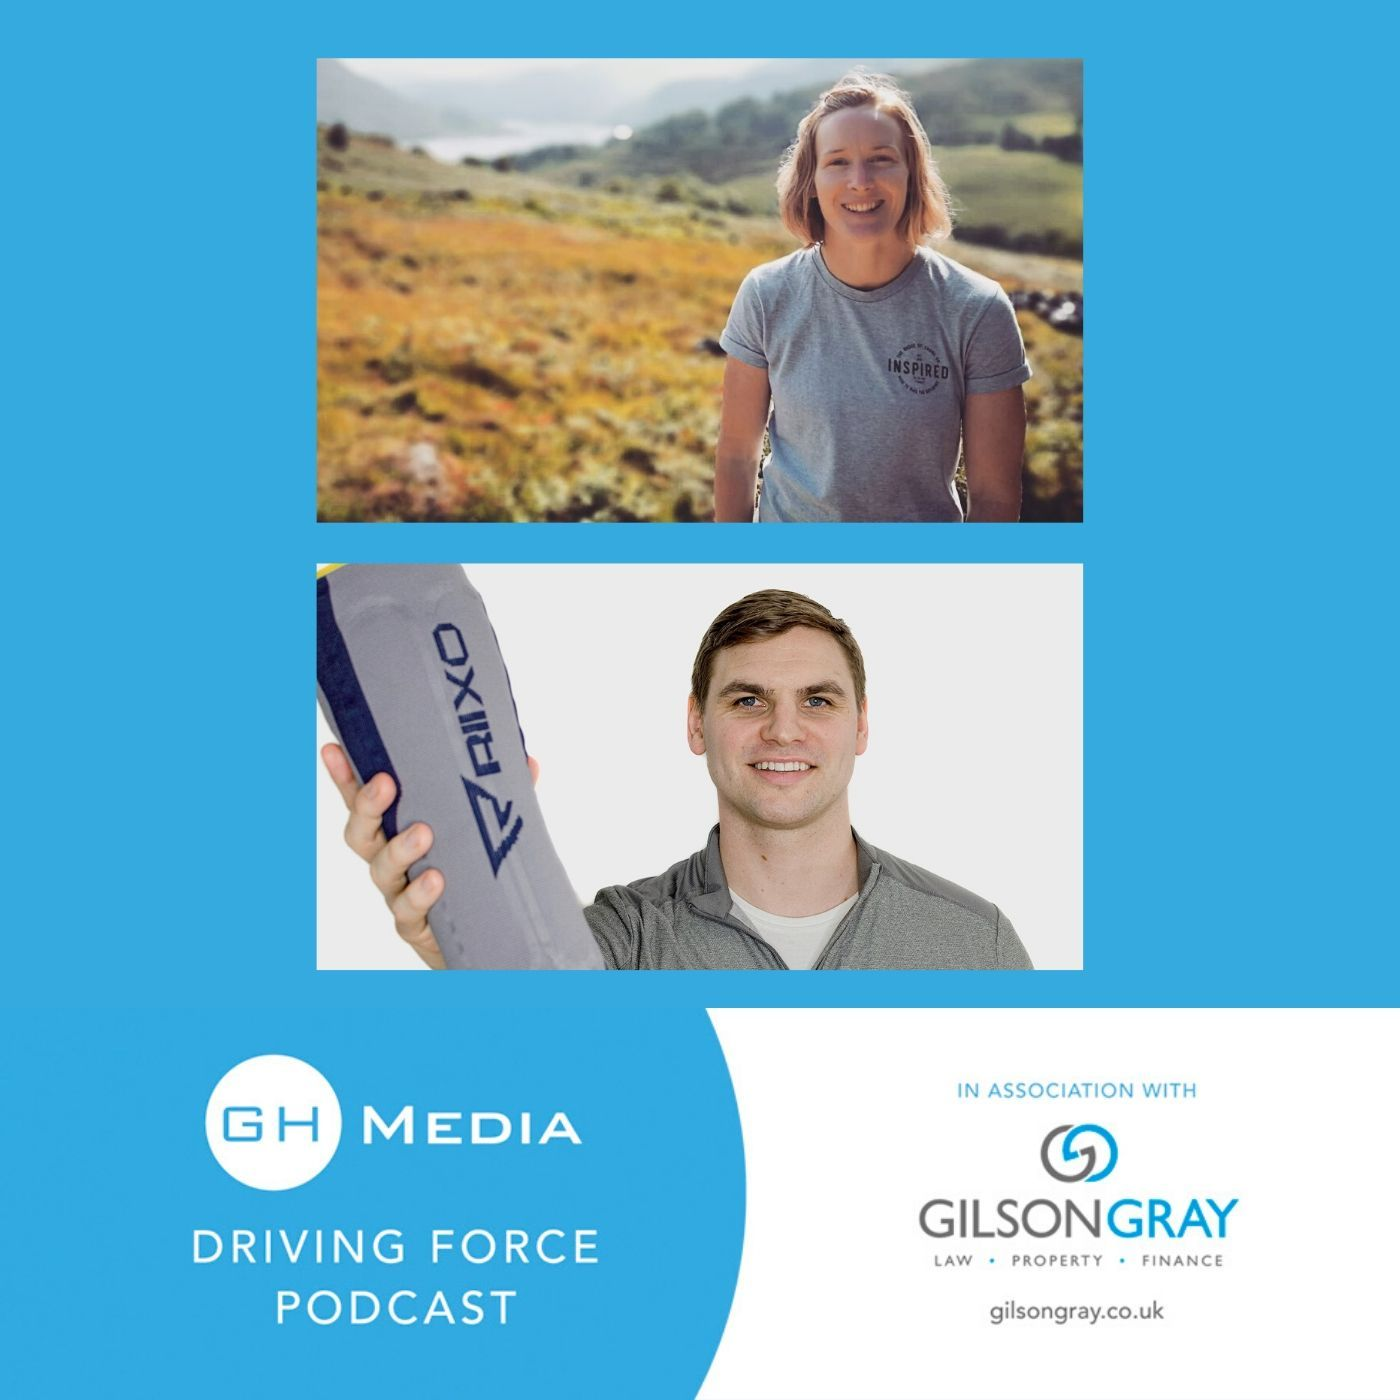 GH Media Driving Force Podcast - Episode 19